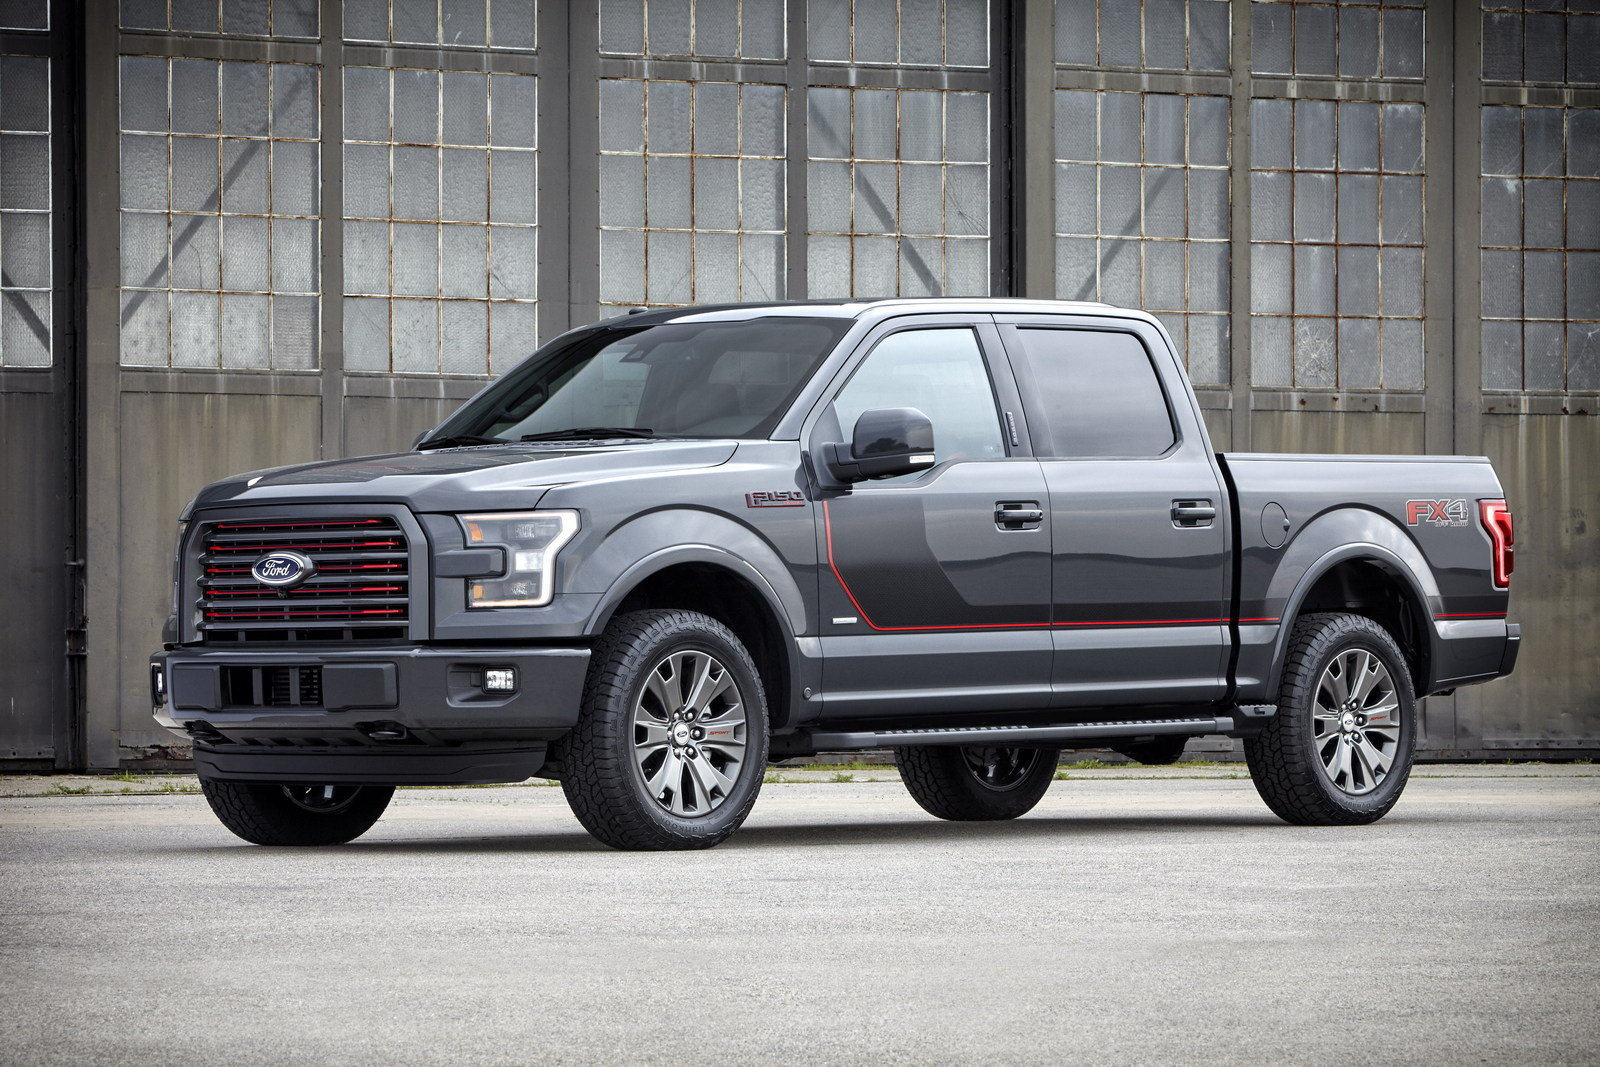 2016 ford f 150 gets new appearance packages picture 635061 truck news top speed. Black Bedroom Furniture Sets. Home Design Ideas